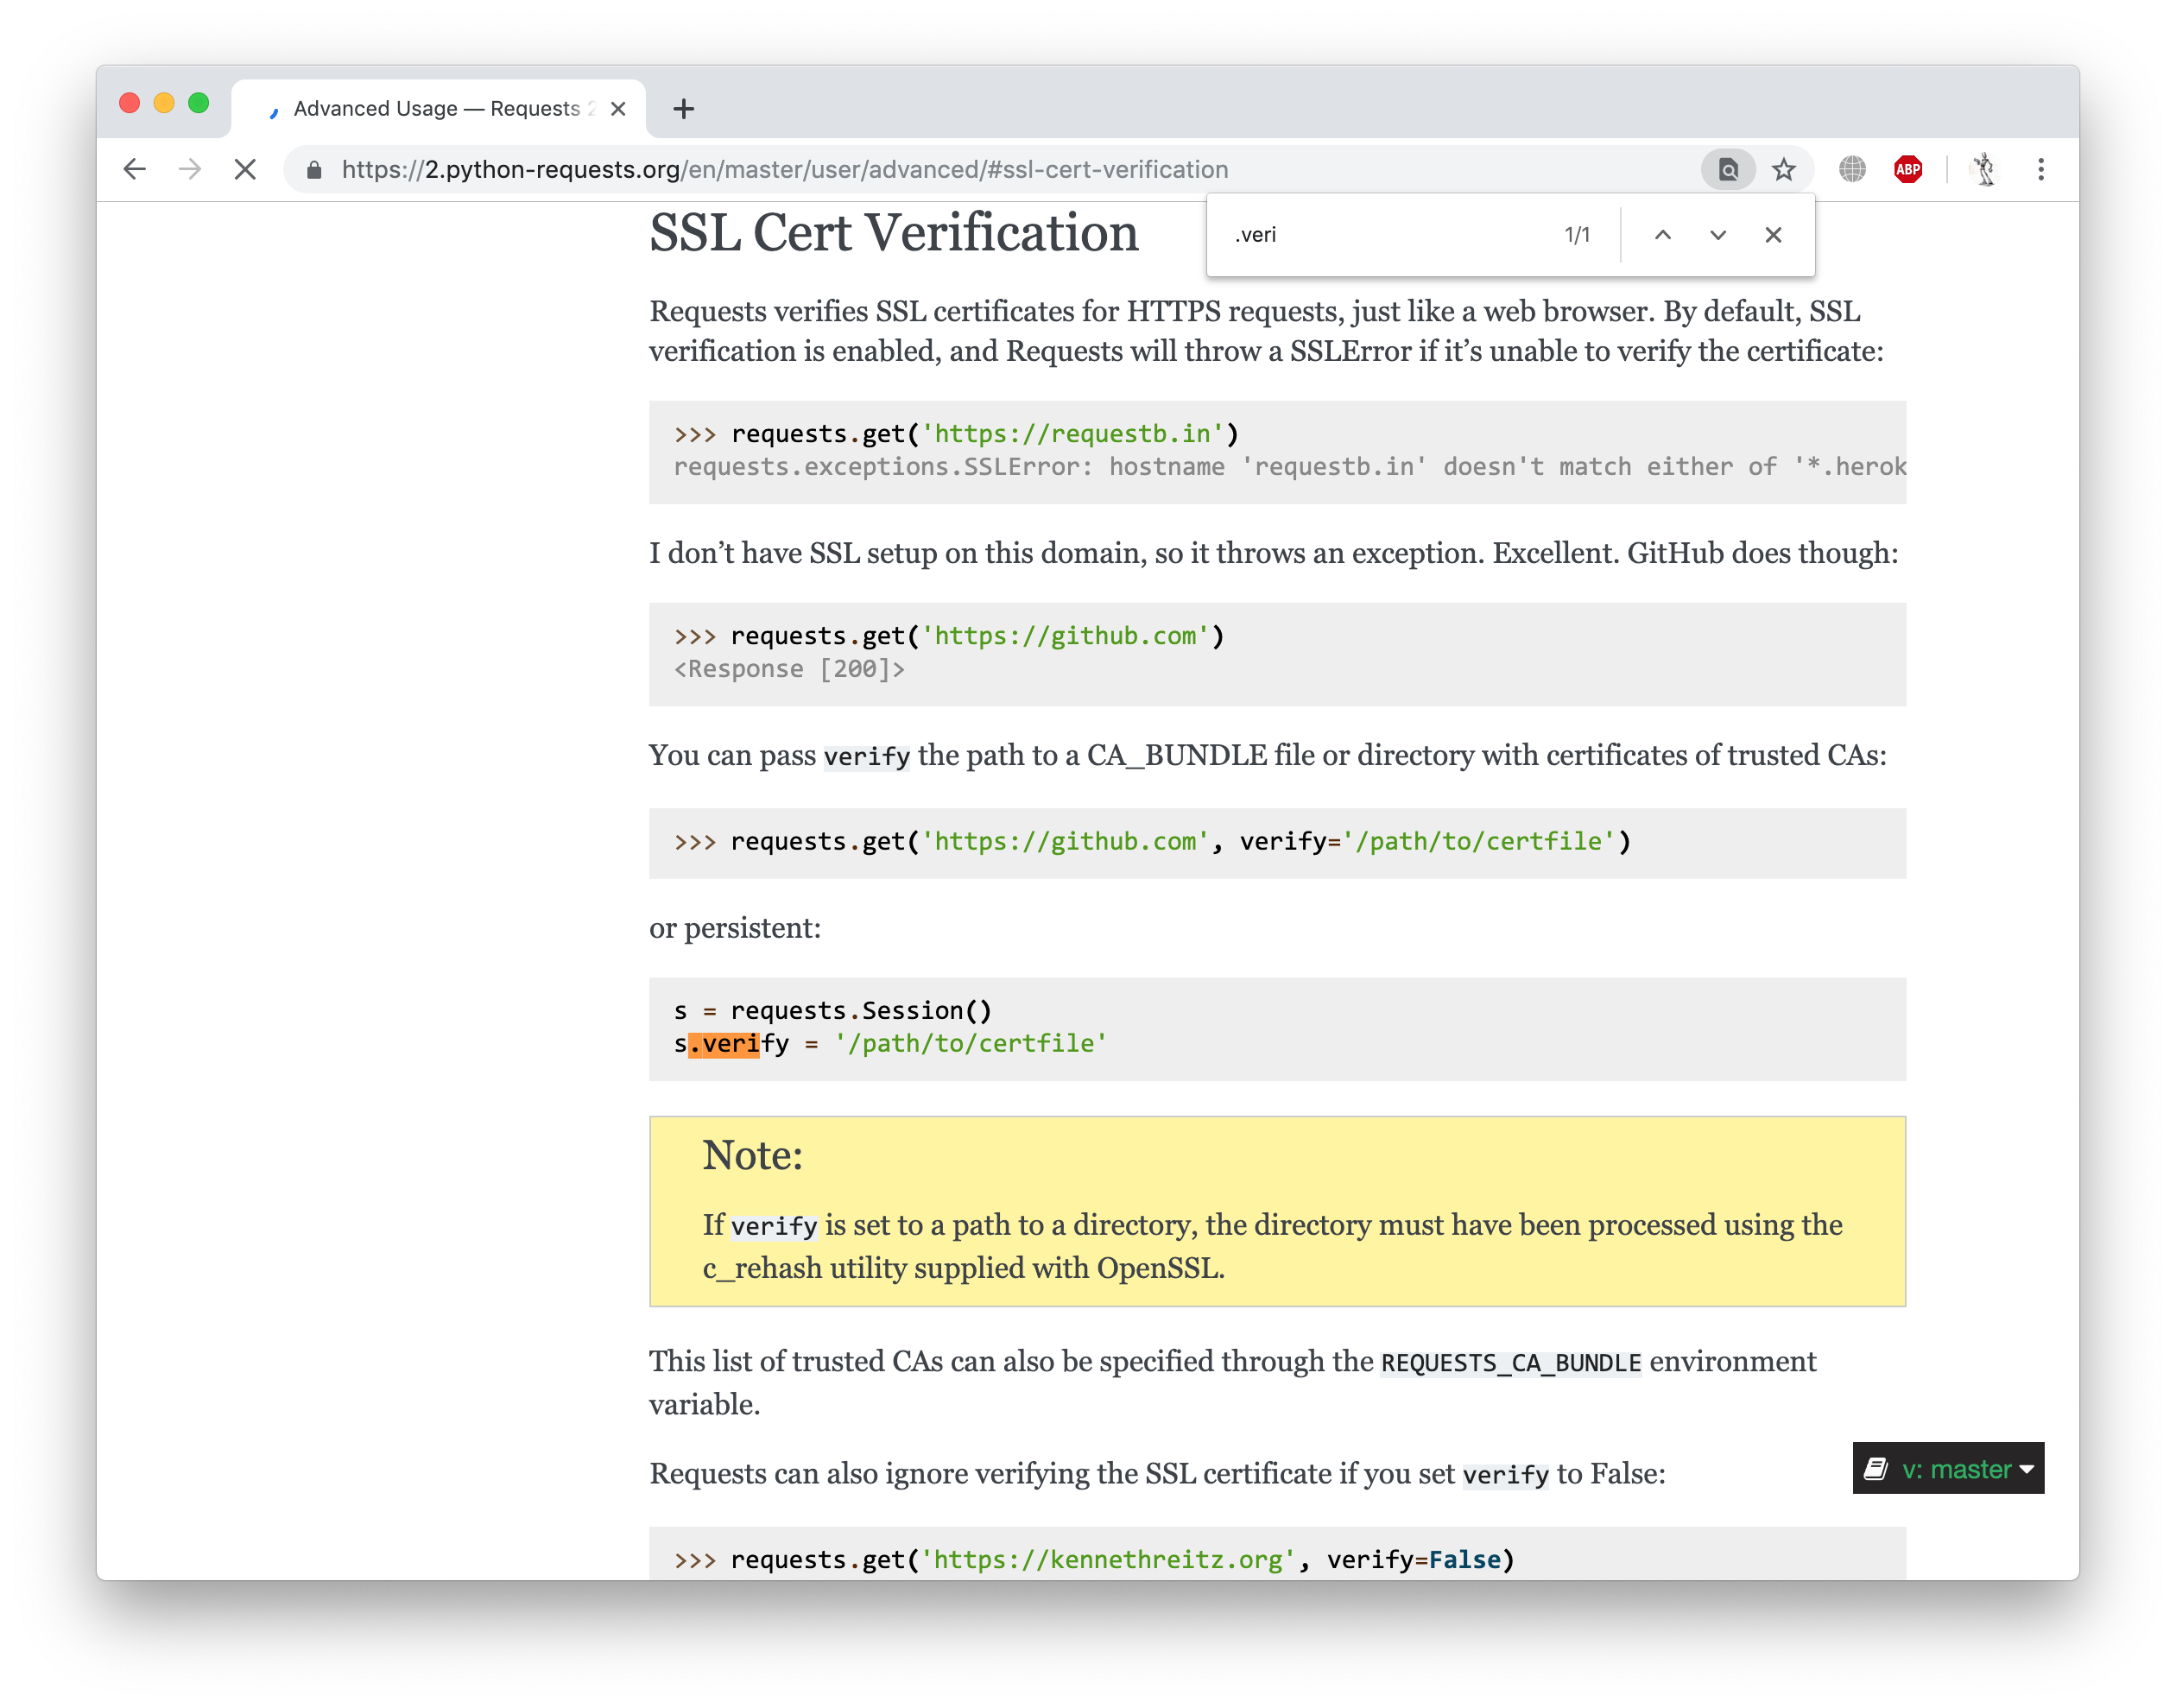 How to disable SSL certificate verification in Python